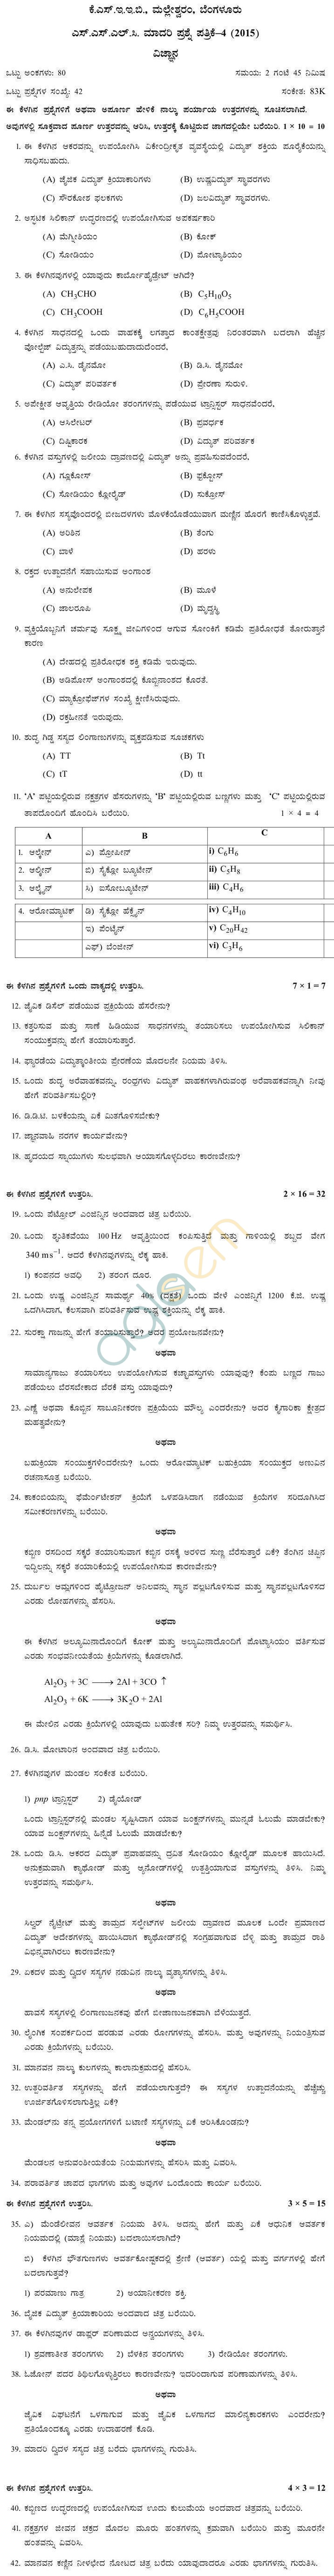 Karnataka Board SSLC Model Question Papers 2015 for Science